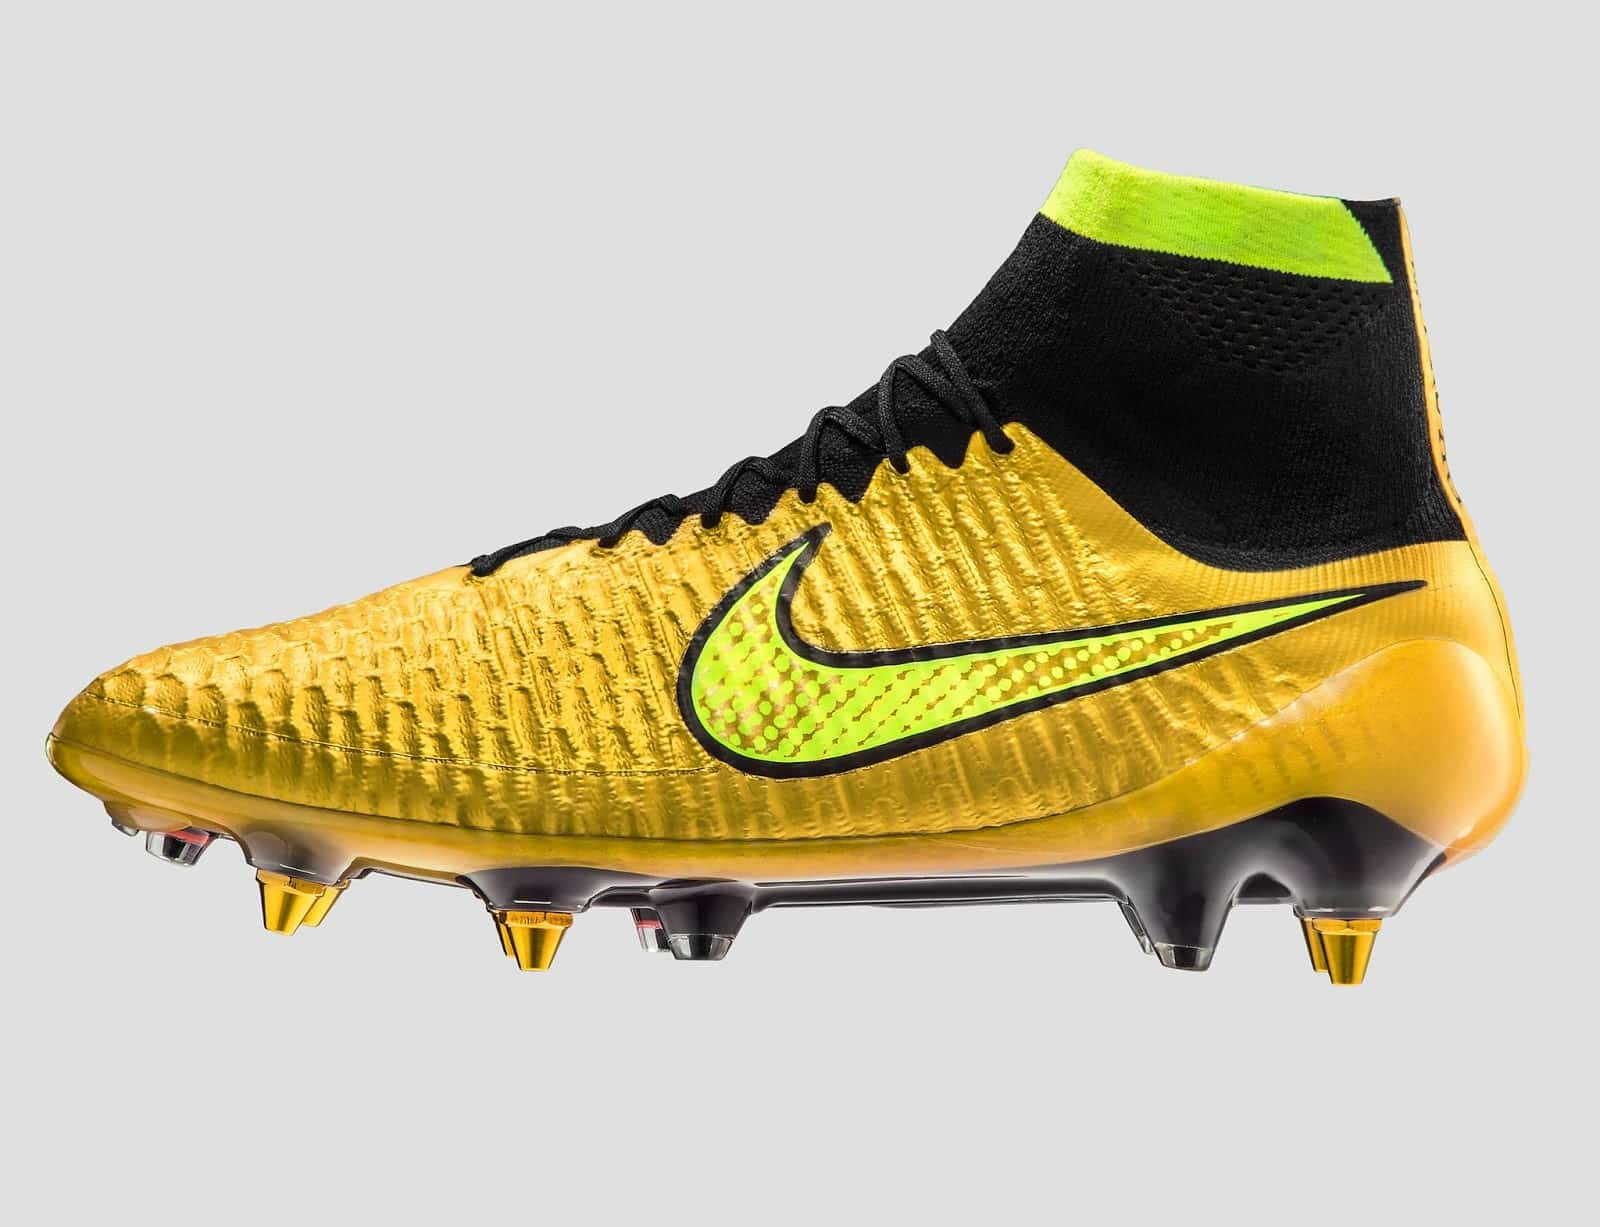 Nike-iD-pack-or-magista-obra